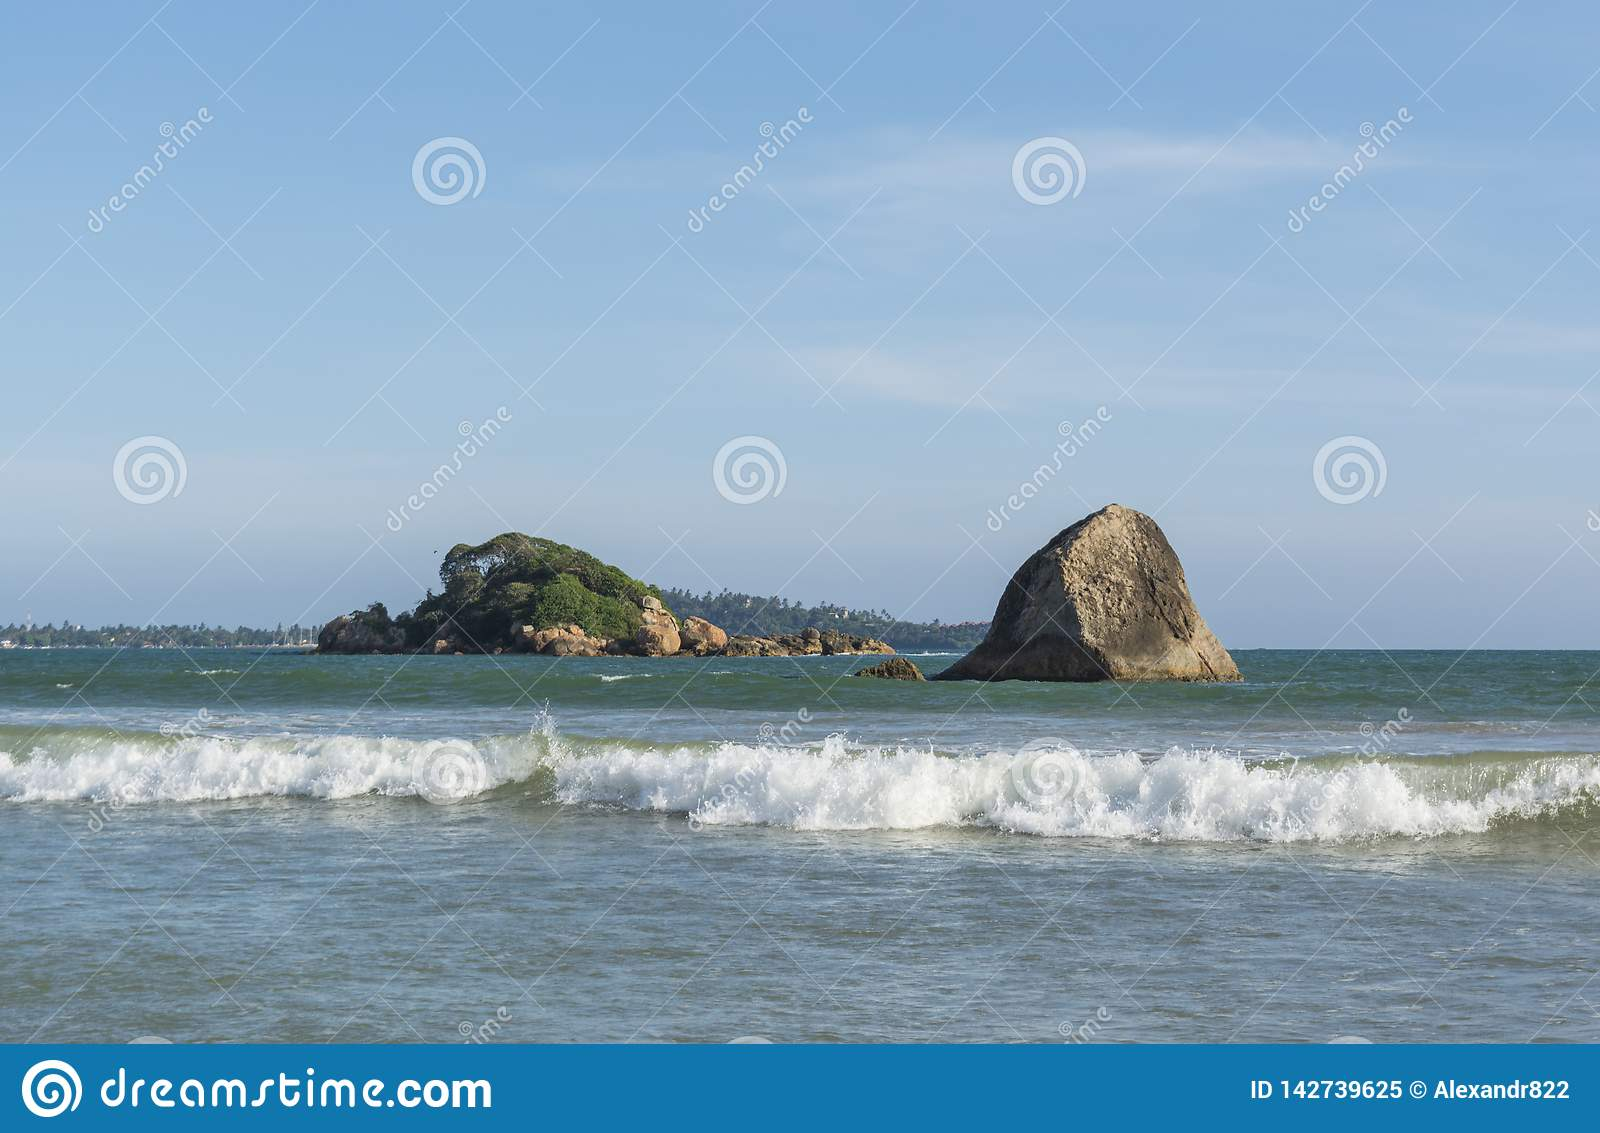 Amazing landscape of the ocean on beautiful tropical beach with rocks in Weligama town